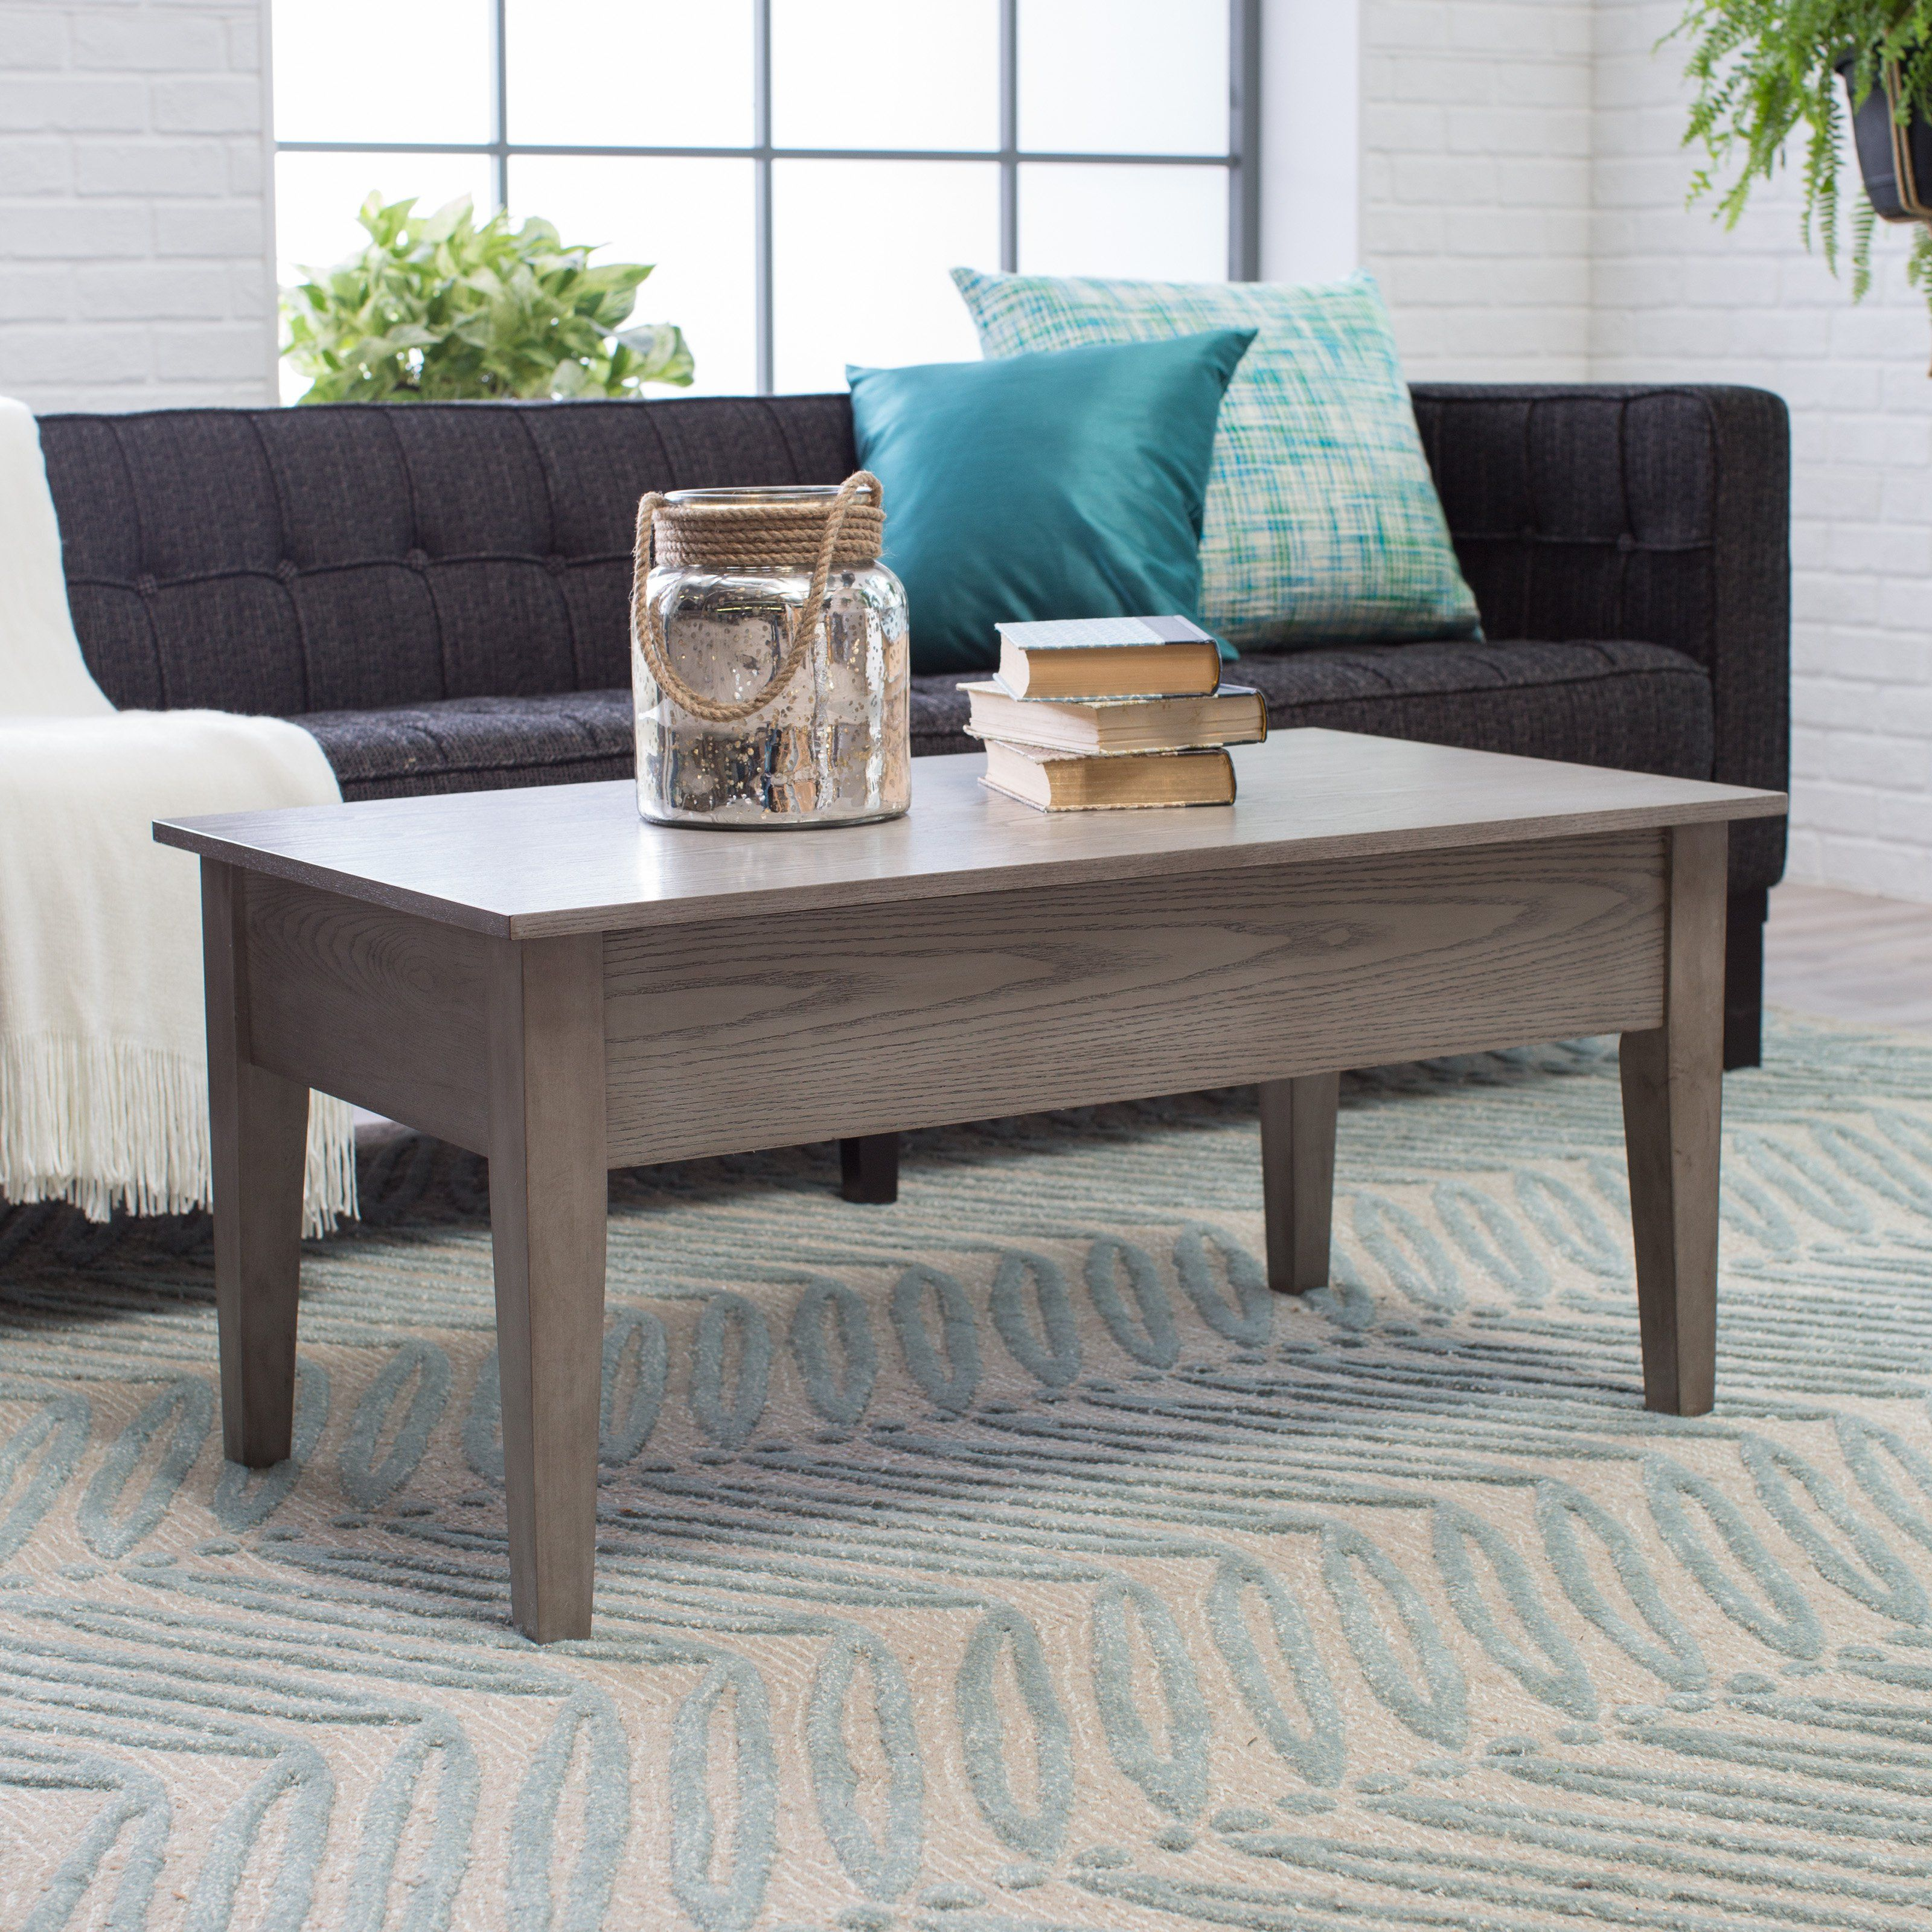 Turner Lift Top Coffee Table Gray Www Hayneedle Com Grey Wood Coffee Table Coffee Table Round Coffee Table Living Room [ 3200 x 3200 Pixel ]